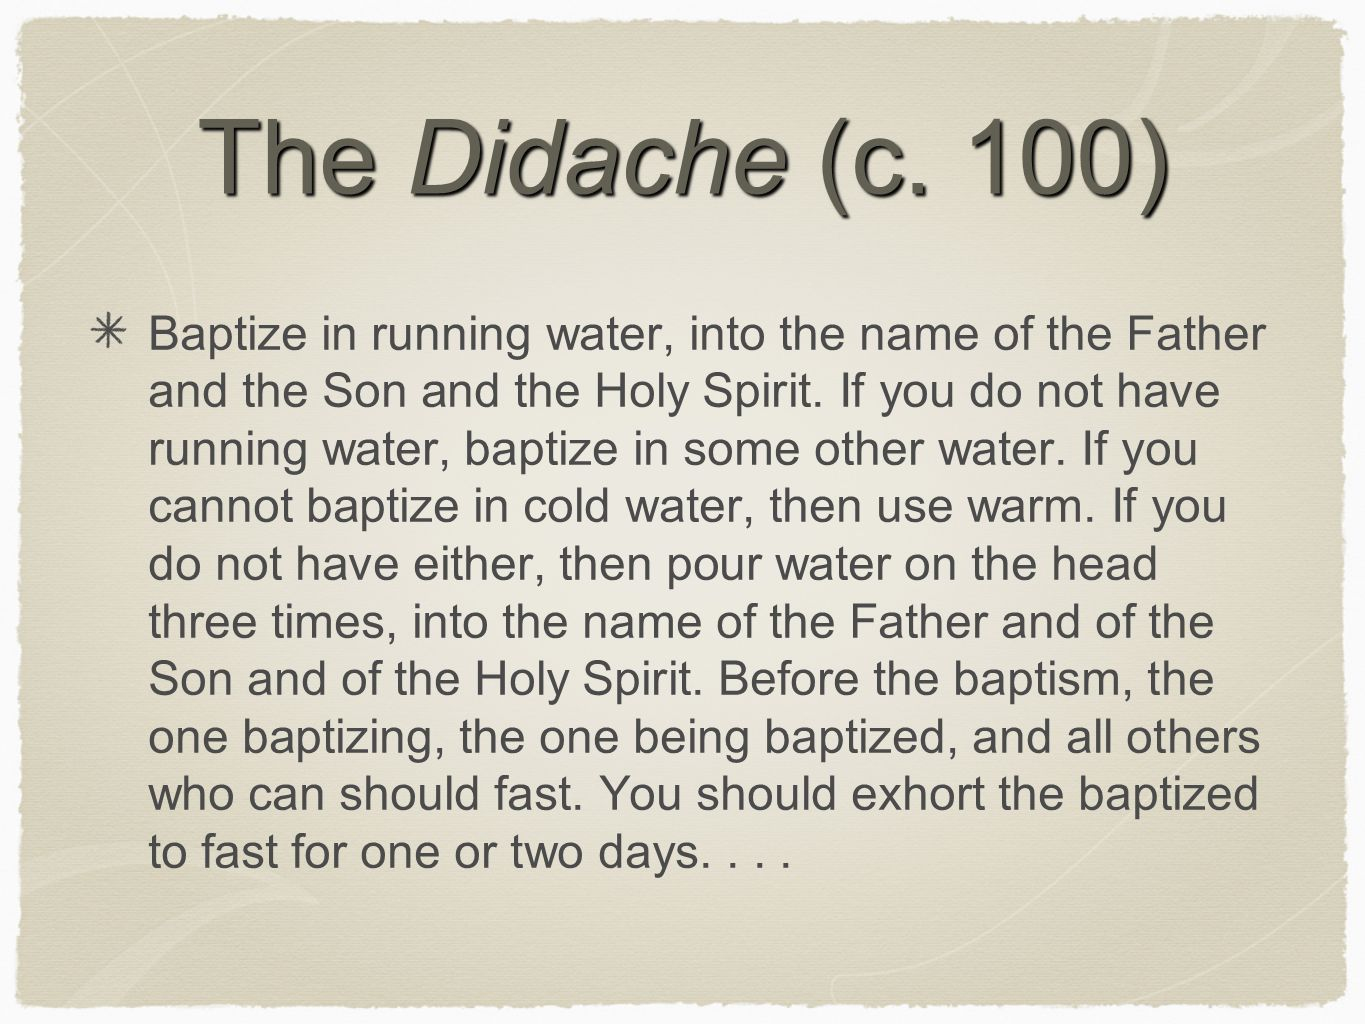 The Didache (c. 100)